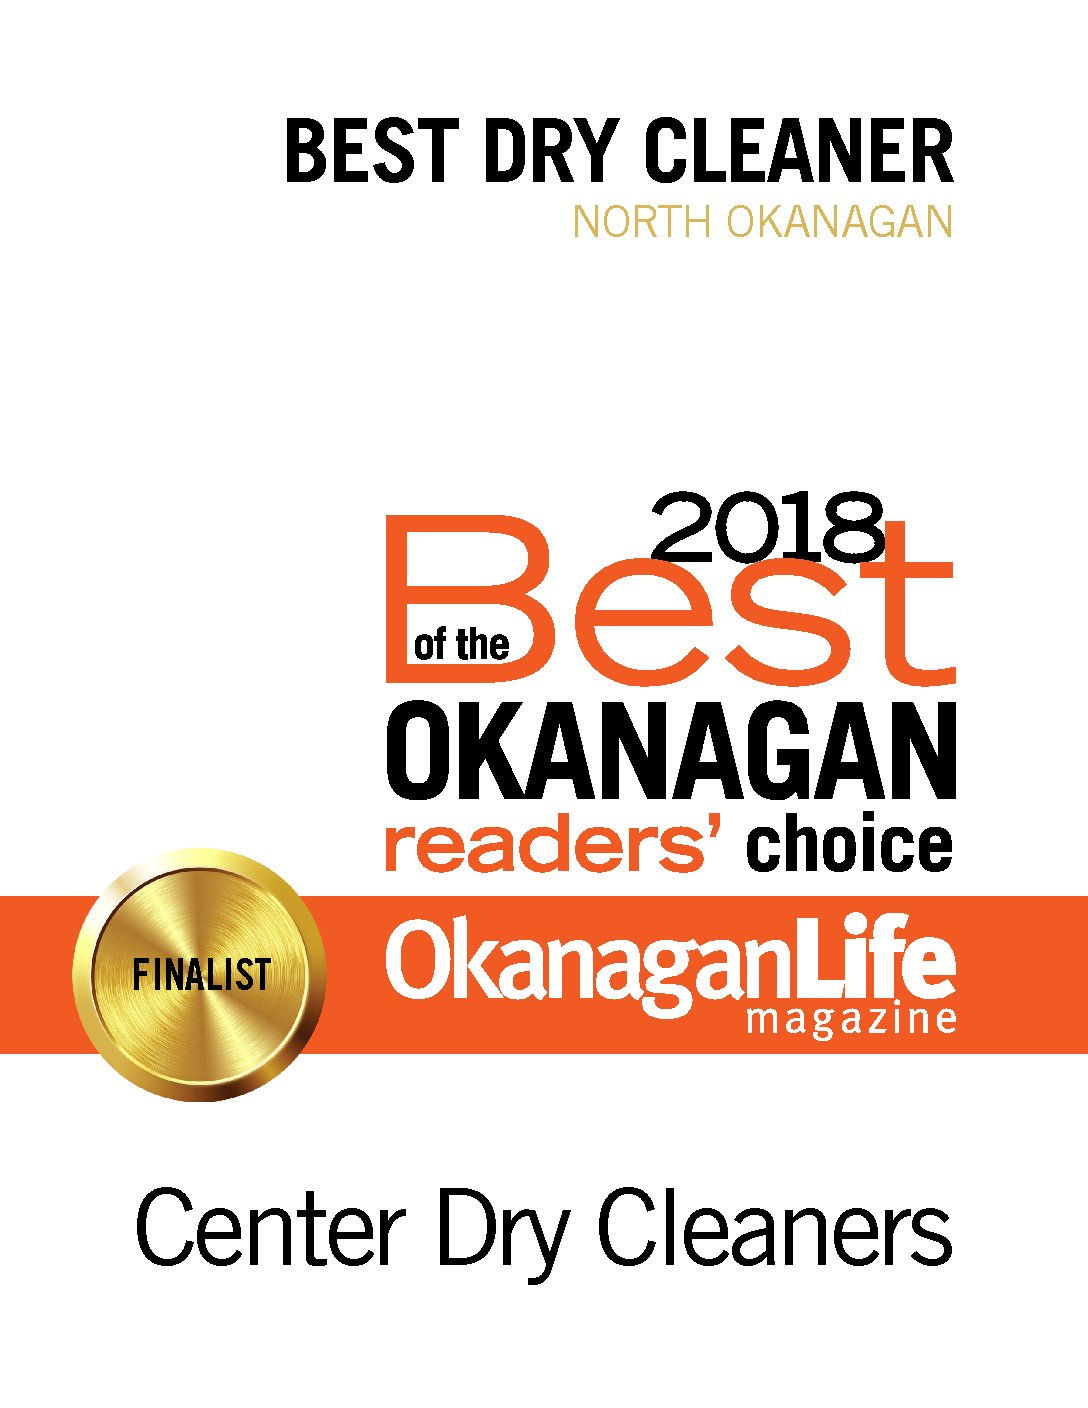 Center Dry Cleaners